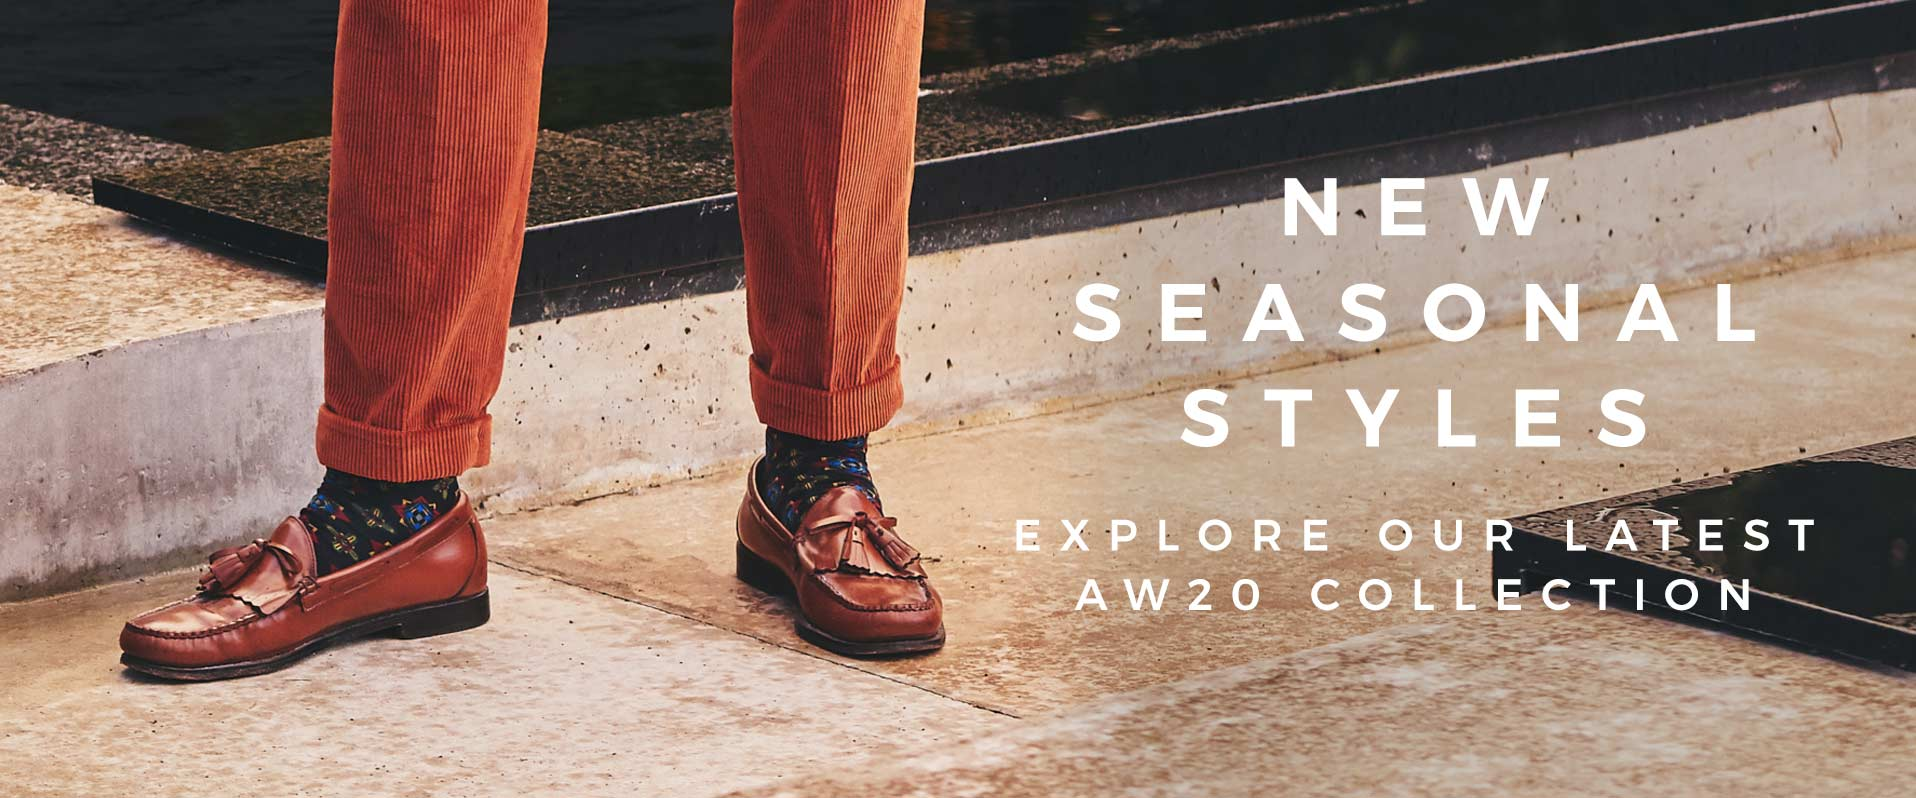 New Autumn/Winter Collection